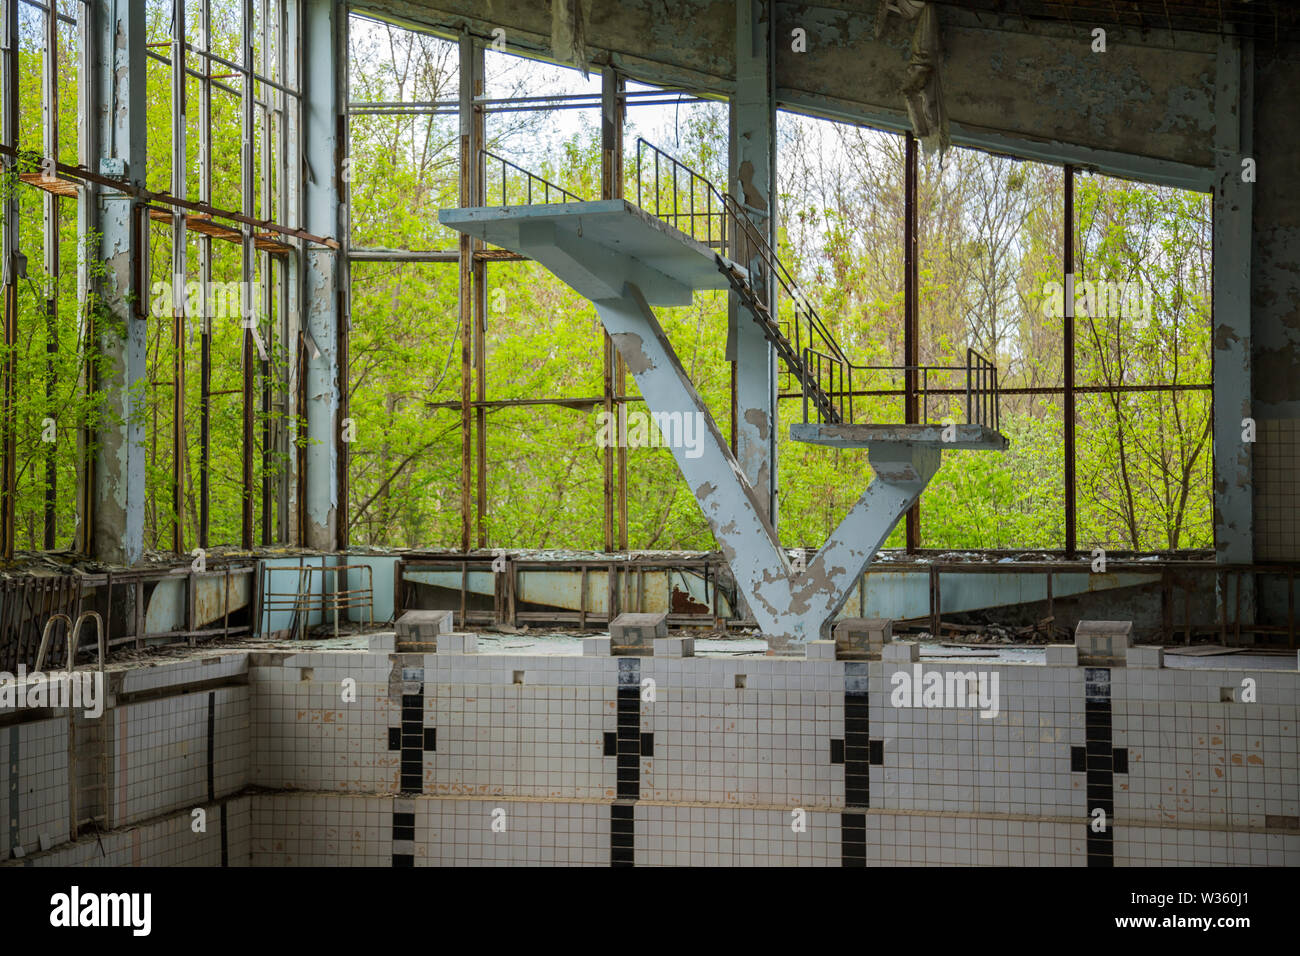 Former swimming pool in Pripyat, the ghost town in the Chernobyl Exclusion Zone - Stock Image